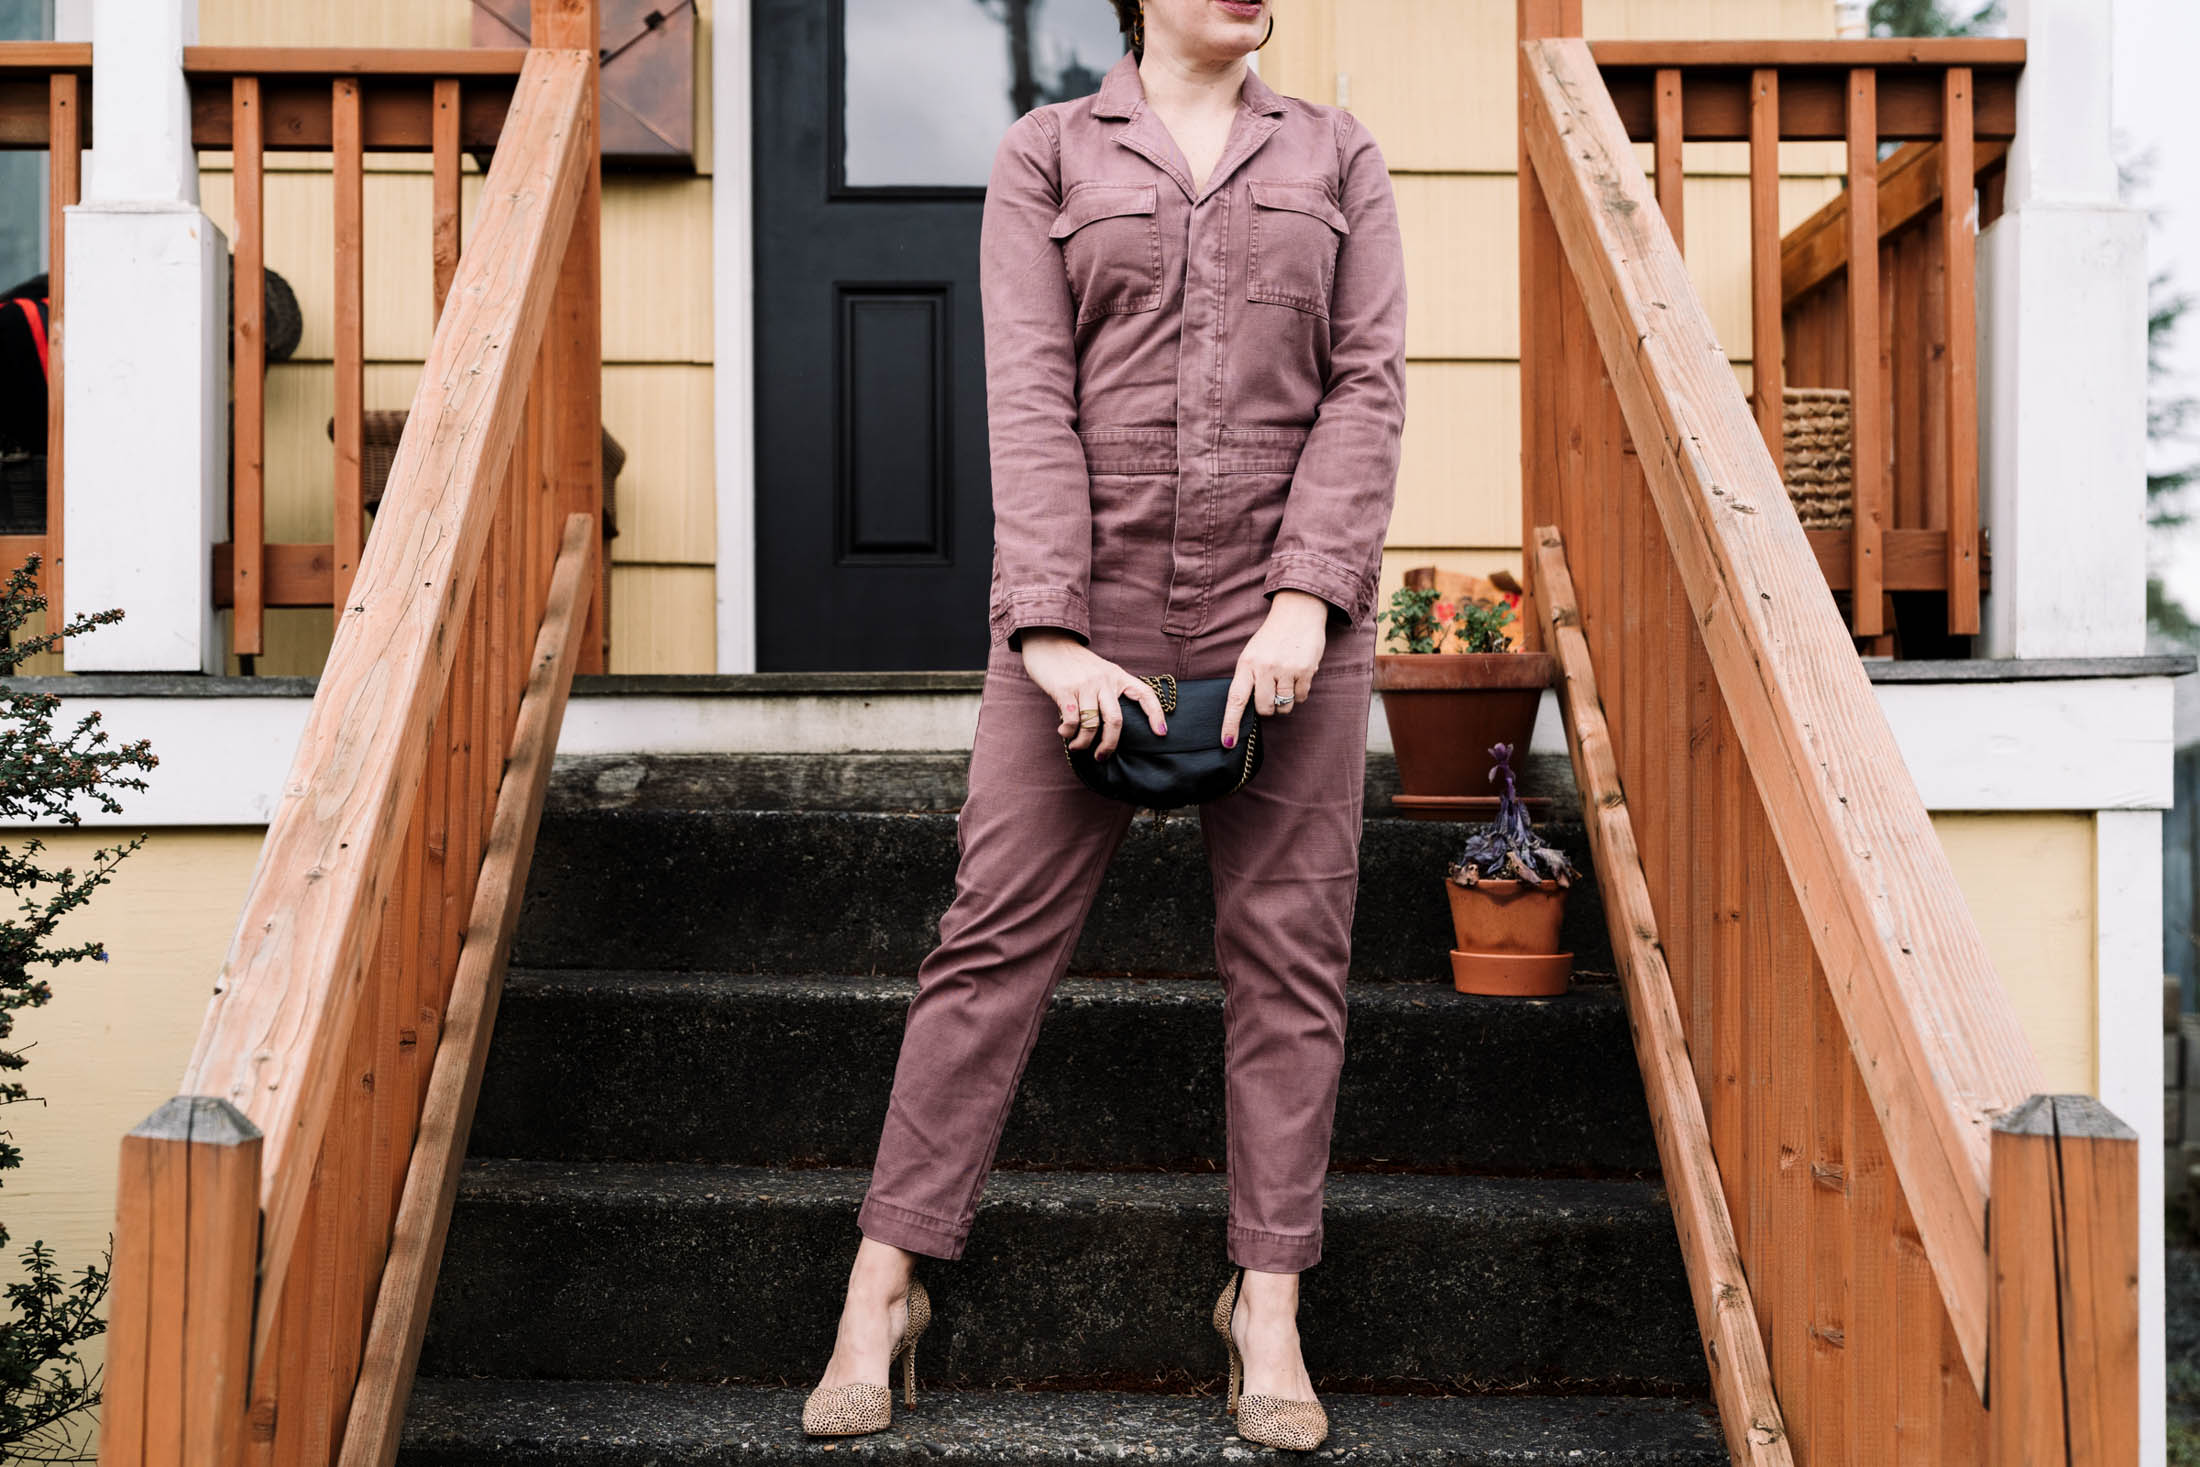 Jumpsuit lovers, rejoice! Coveralls may be your next foray into fashion's wilds. I'm trying the day-to-night vibe of the Madewell coveralls...check it out.